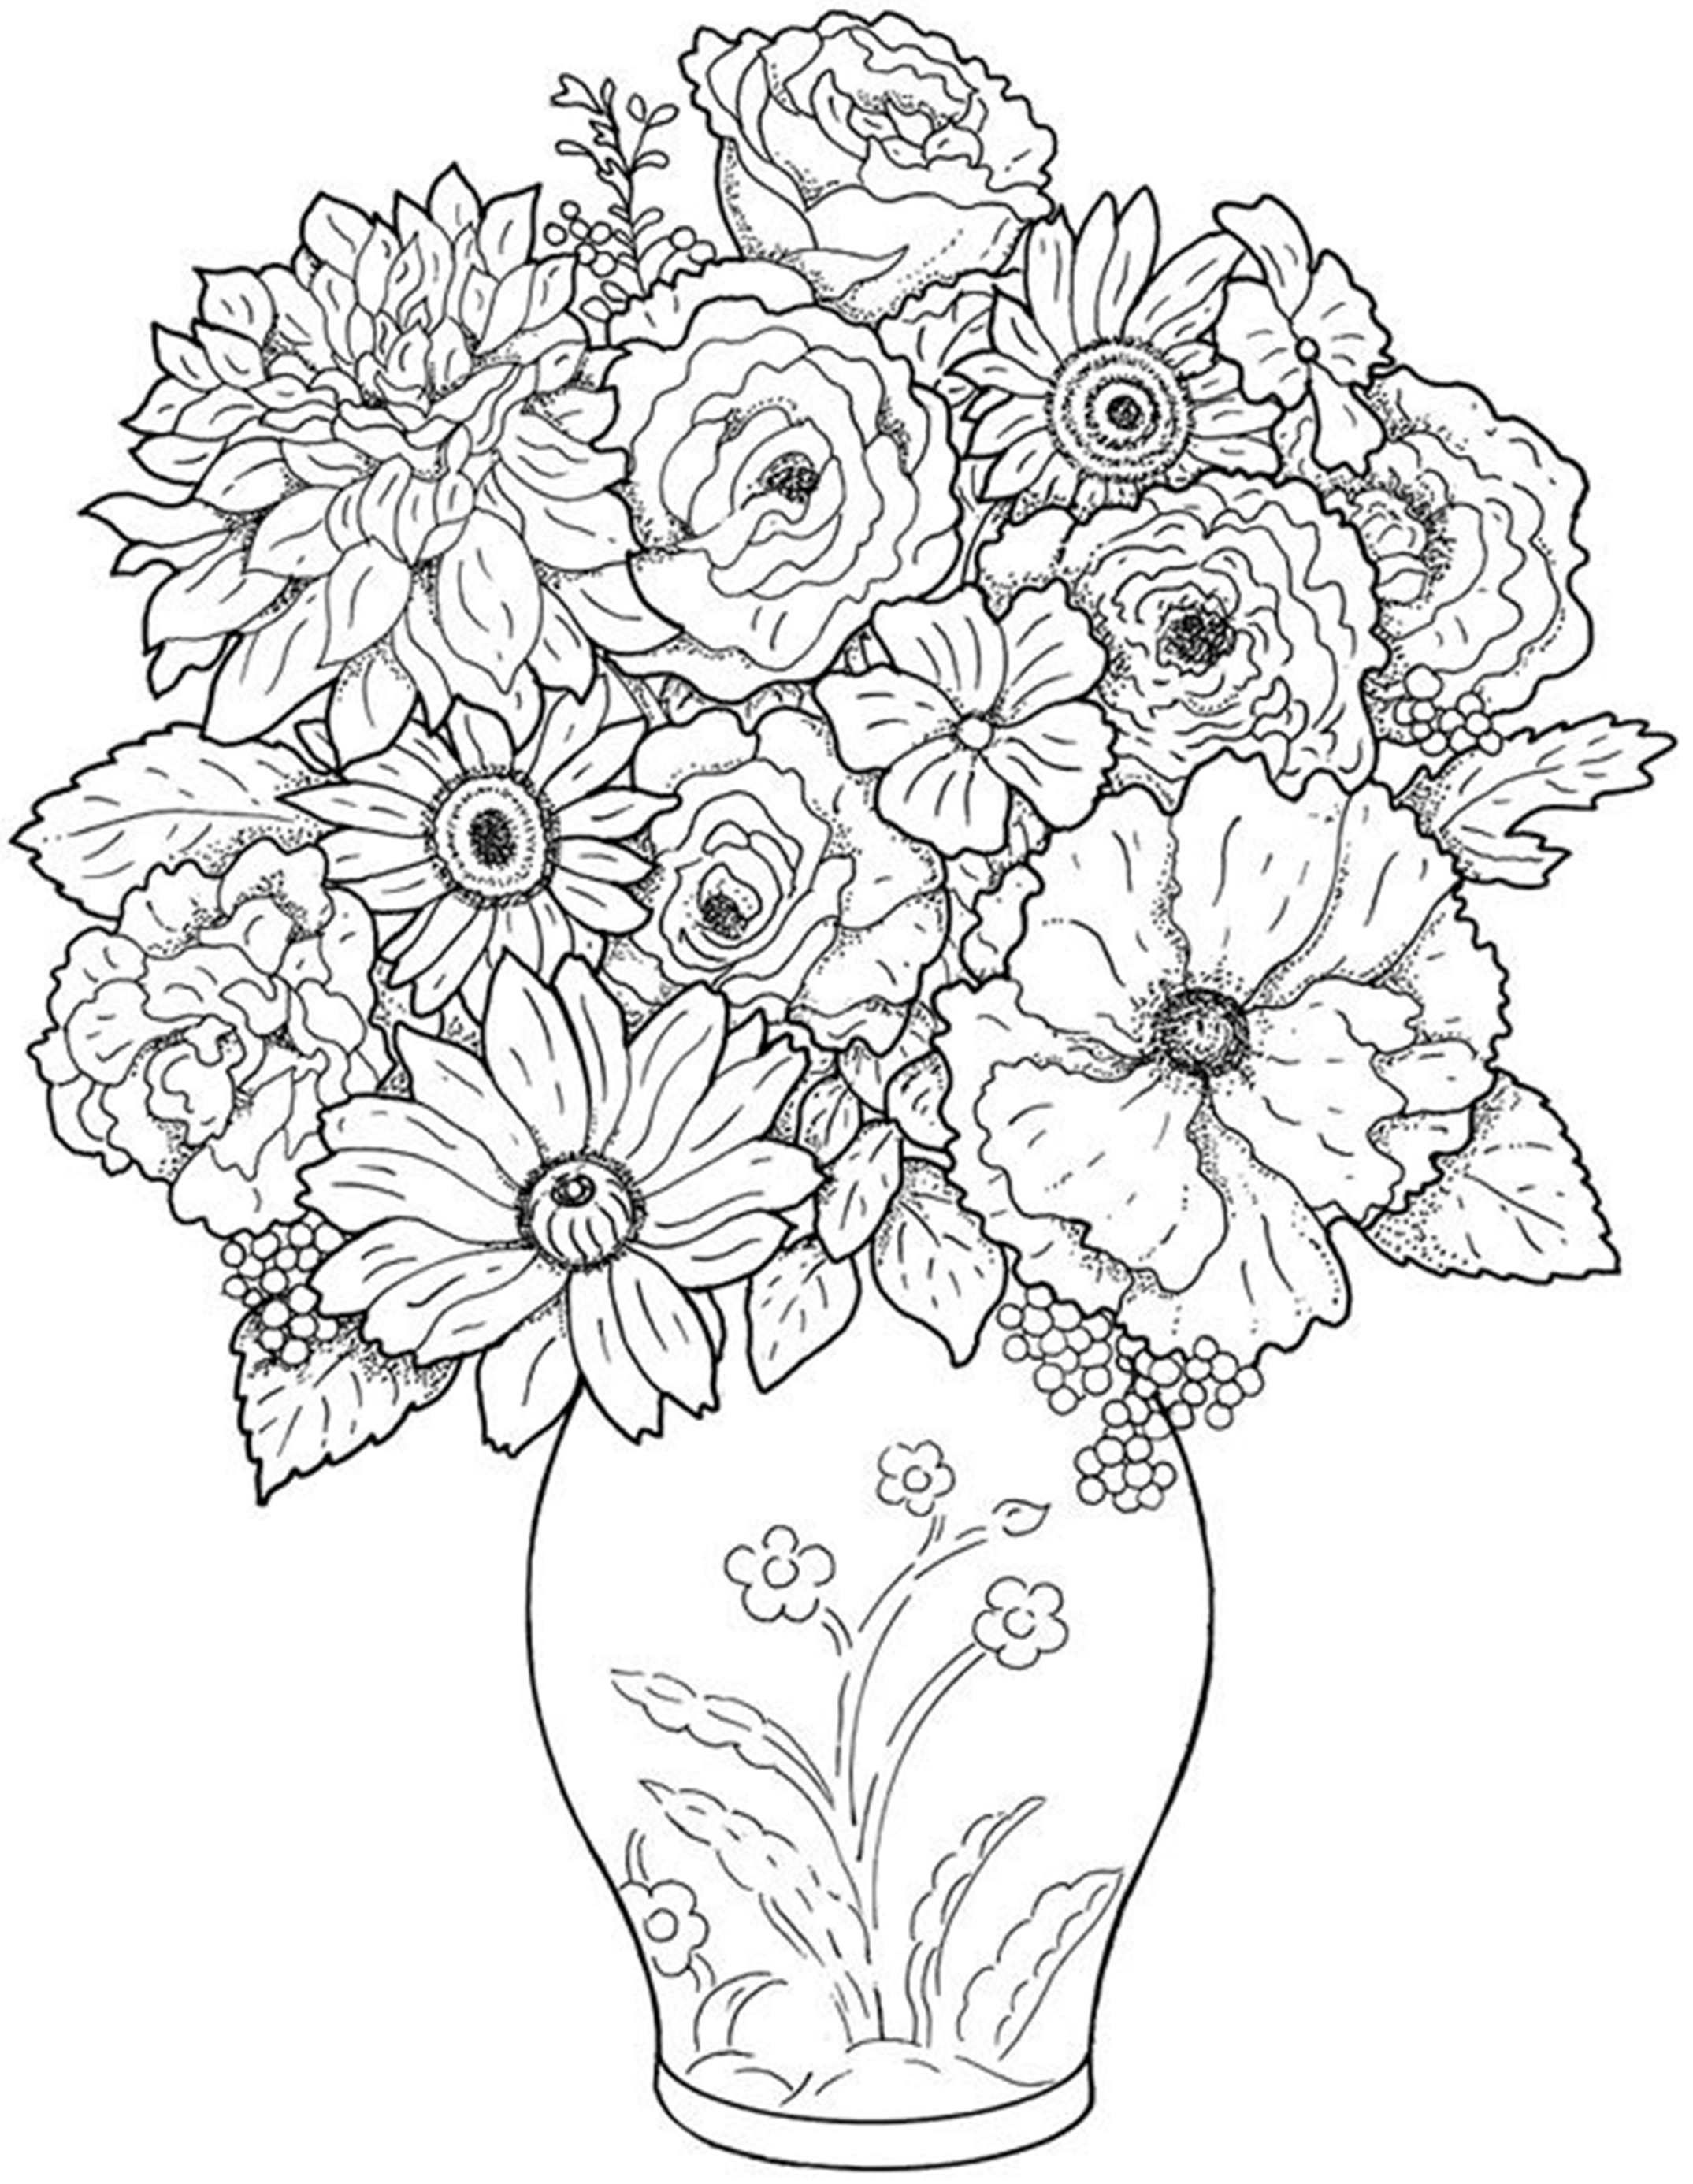 coloring pages about flowers - photo#15